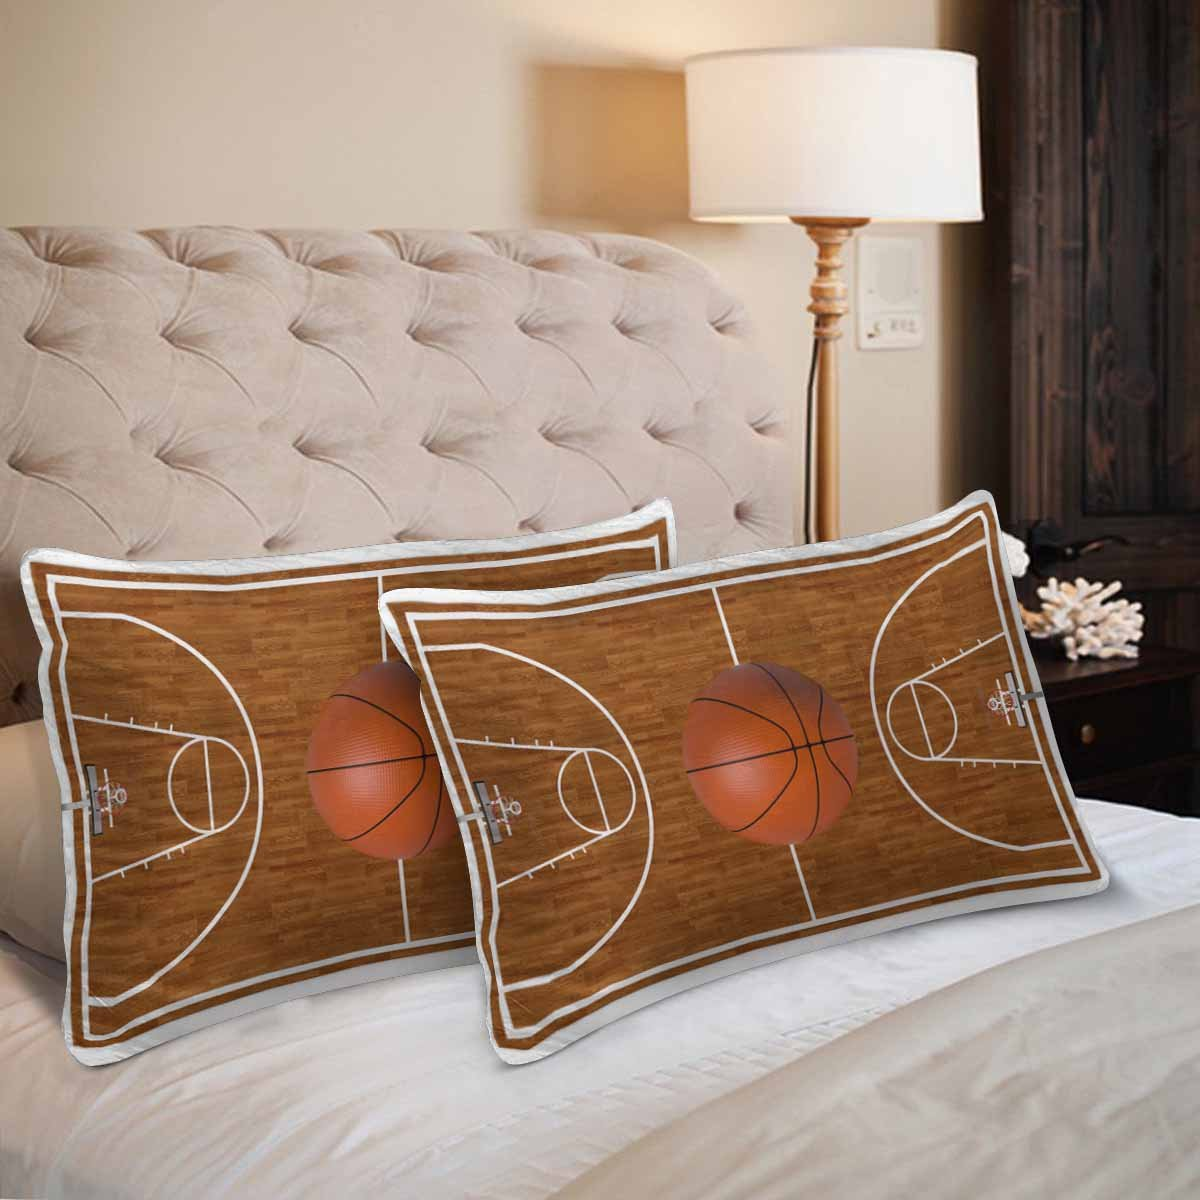 InterestPrint Sports Basketball Court Playtime Boys Wood Pillow Cases Pillowcase Standard Size 20x30 Set of 2, Rectangle Pillow Covers Protector for Home Couch Sofa Bedding Decorative by InterestPrint (Image #2)